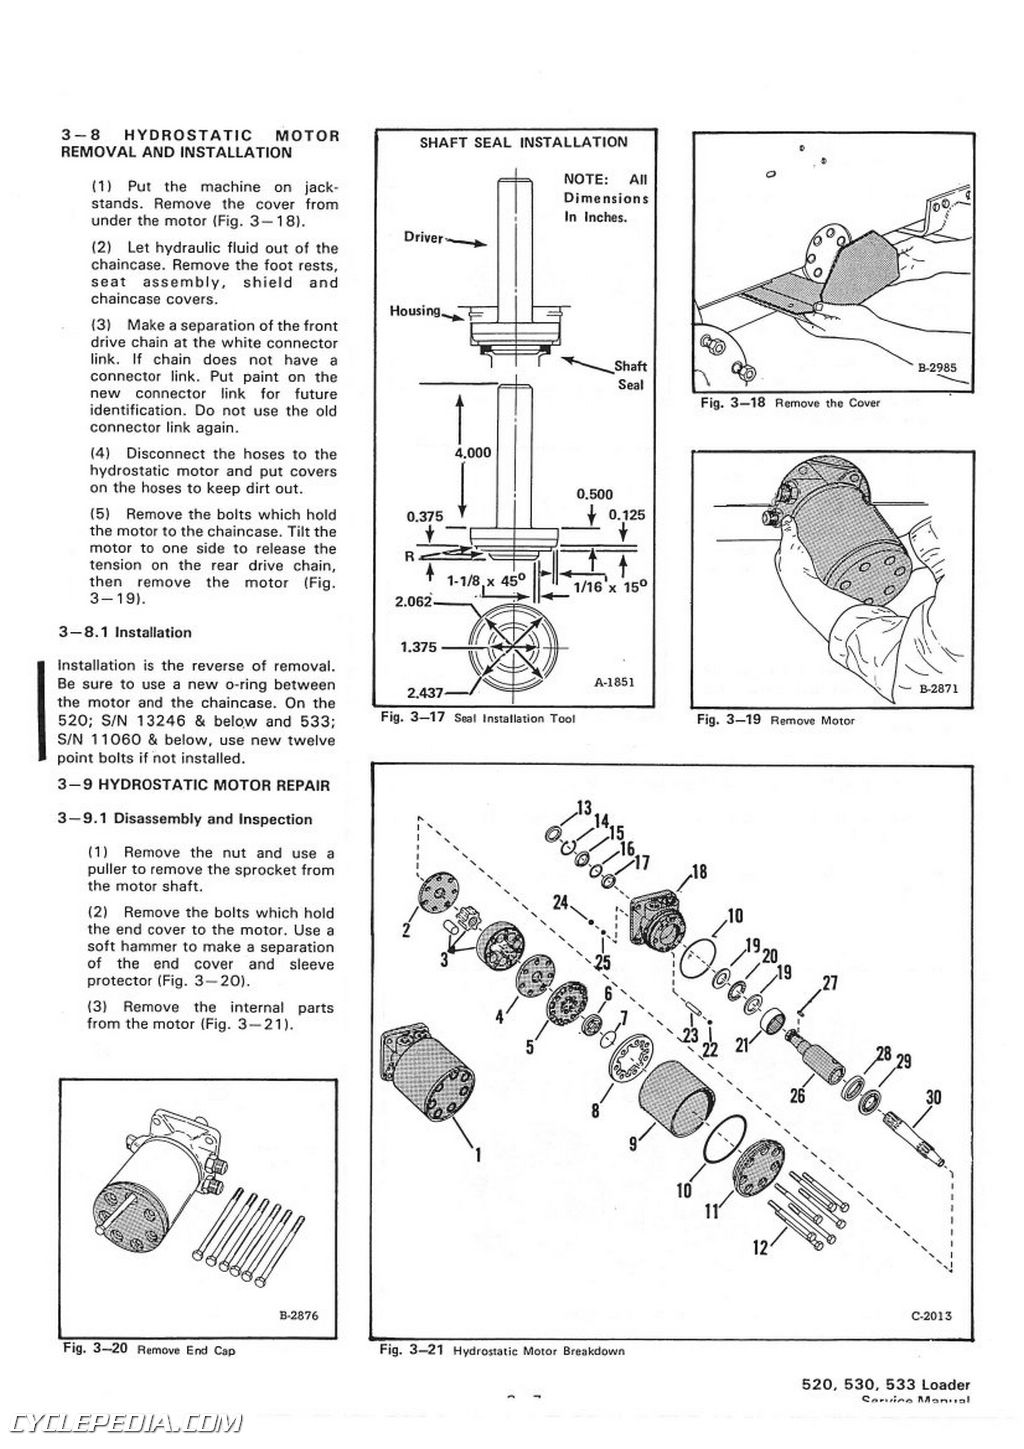 843 Bobcat Wiring Diagram Bobcat 520 530 533 Skid Steer Service Manual